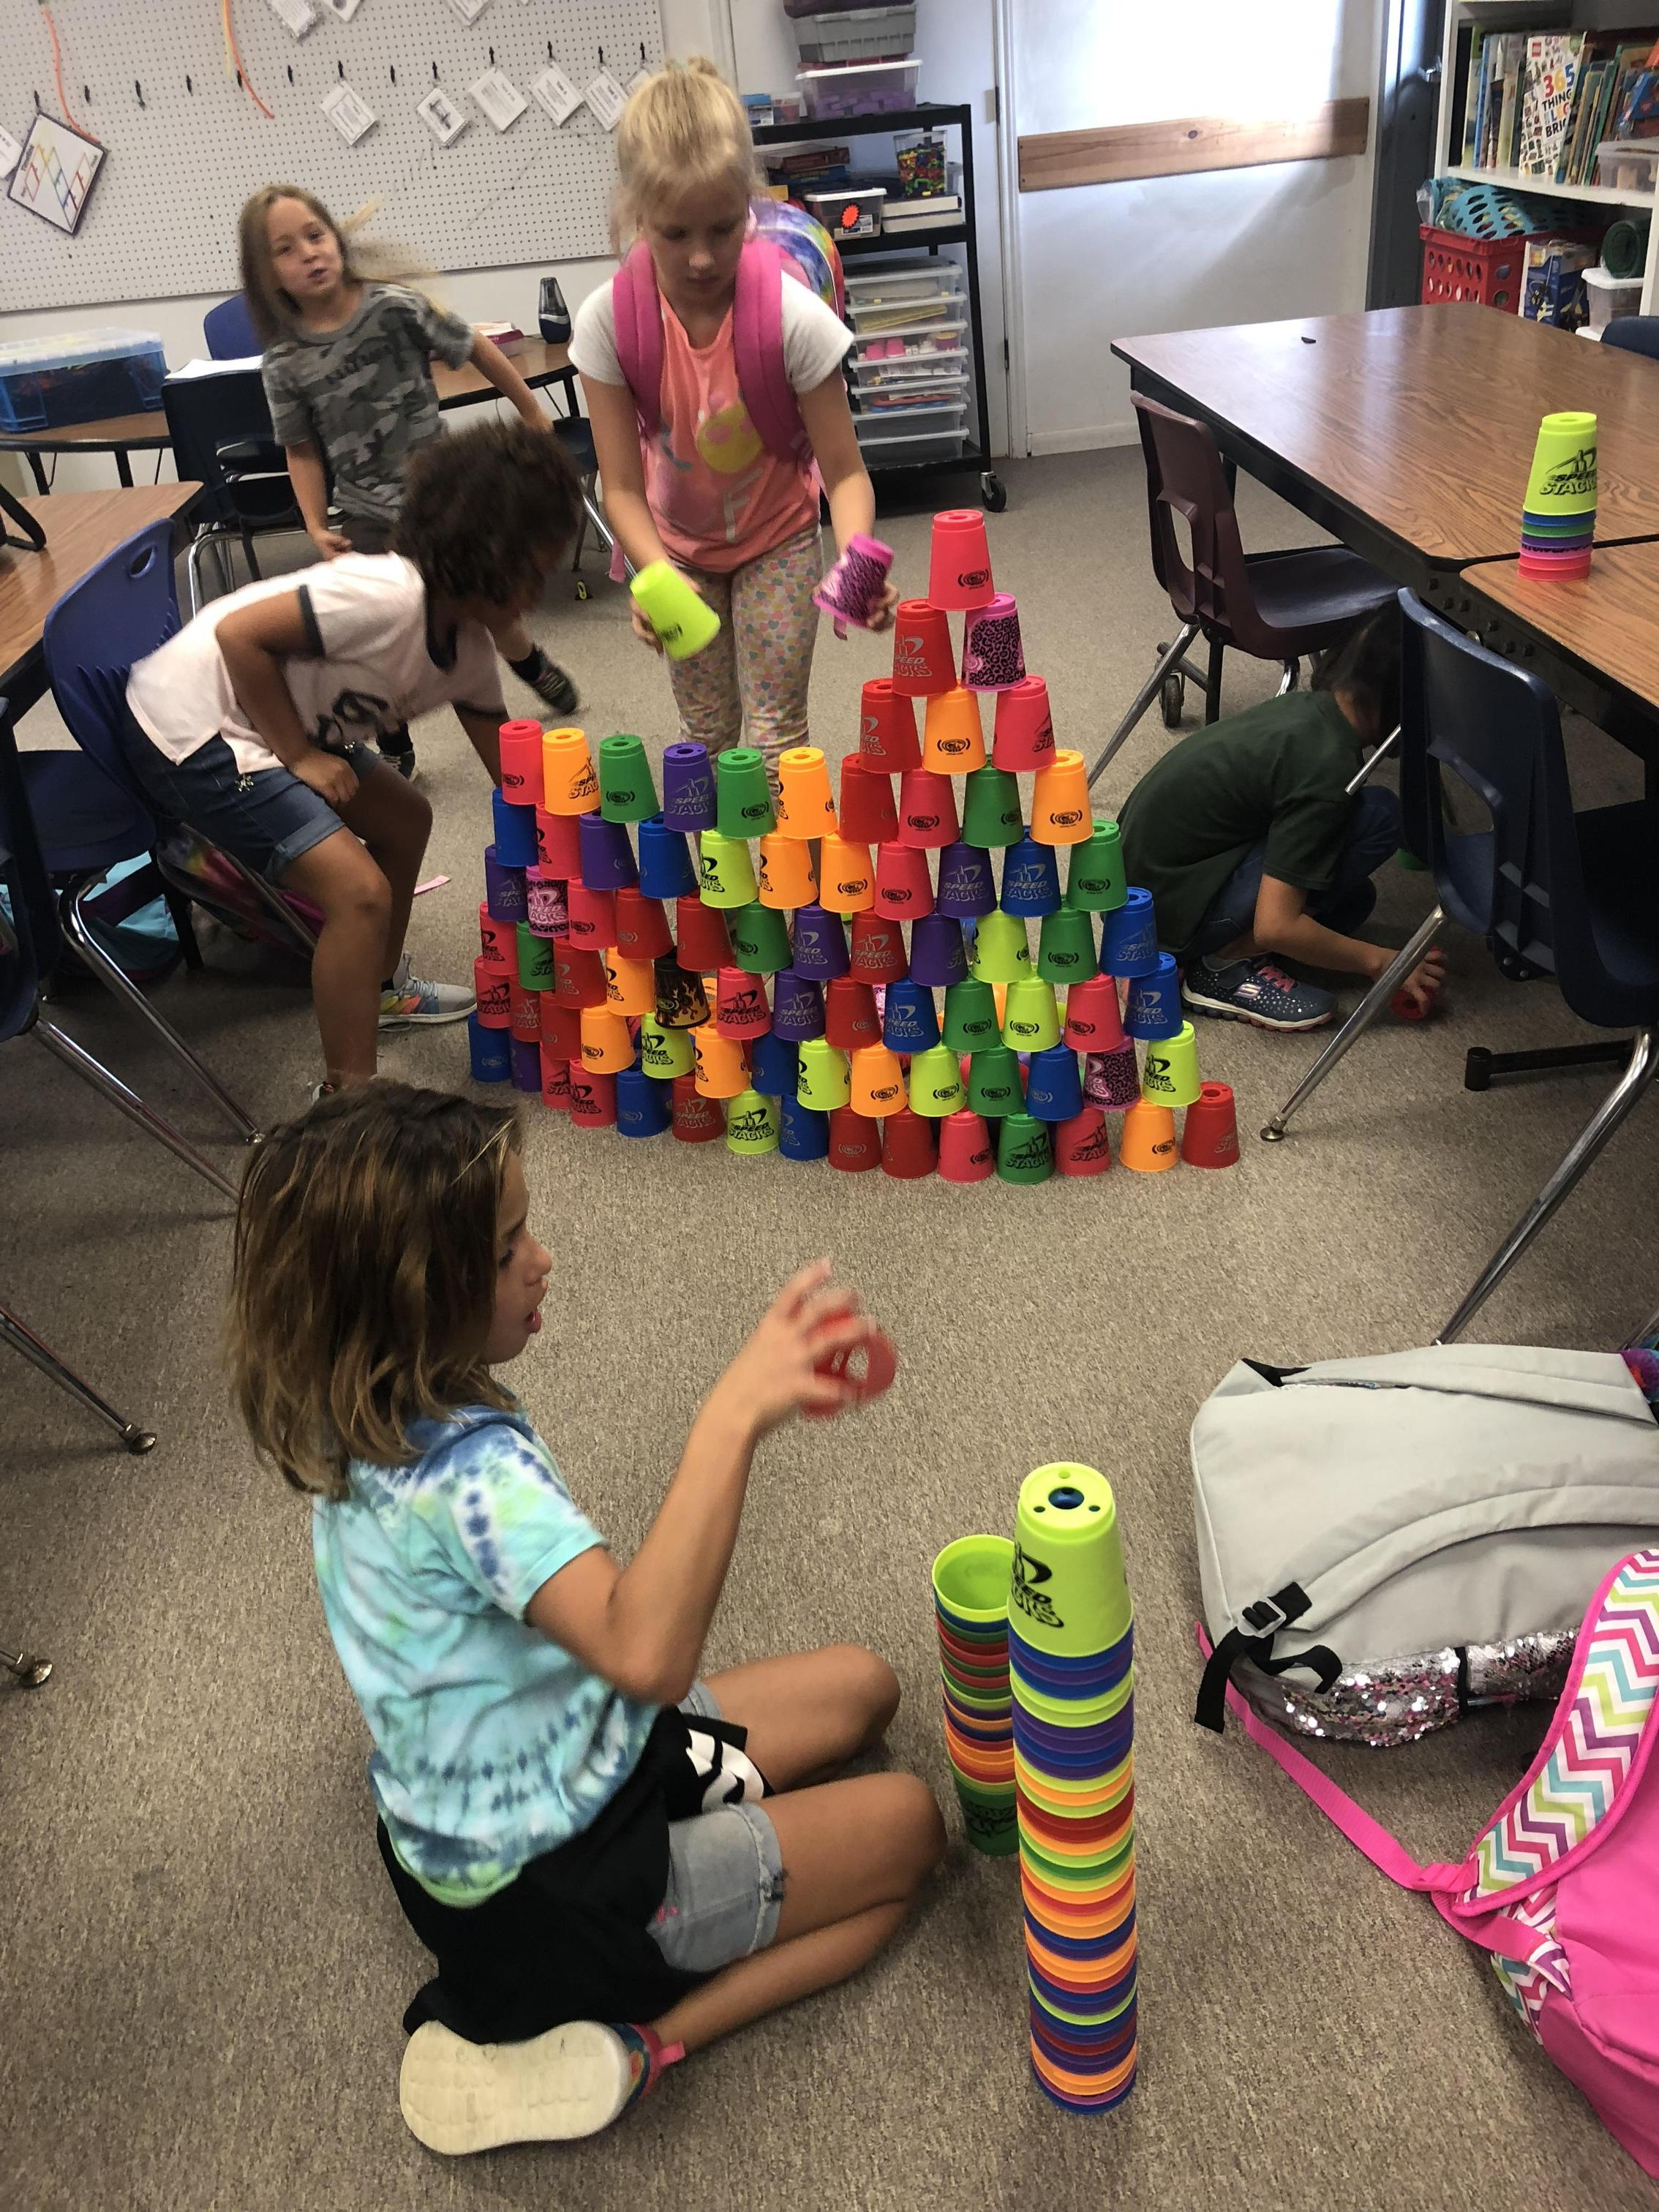 Students building things with cups.